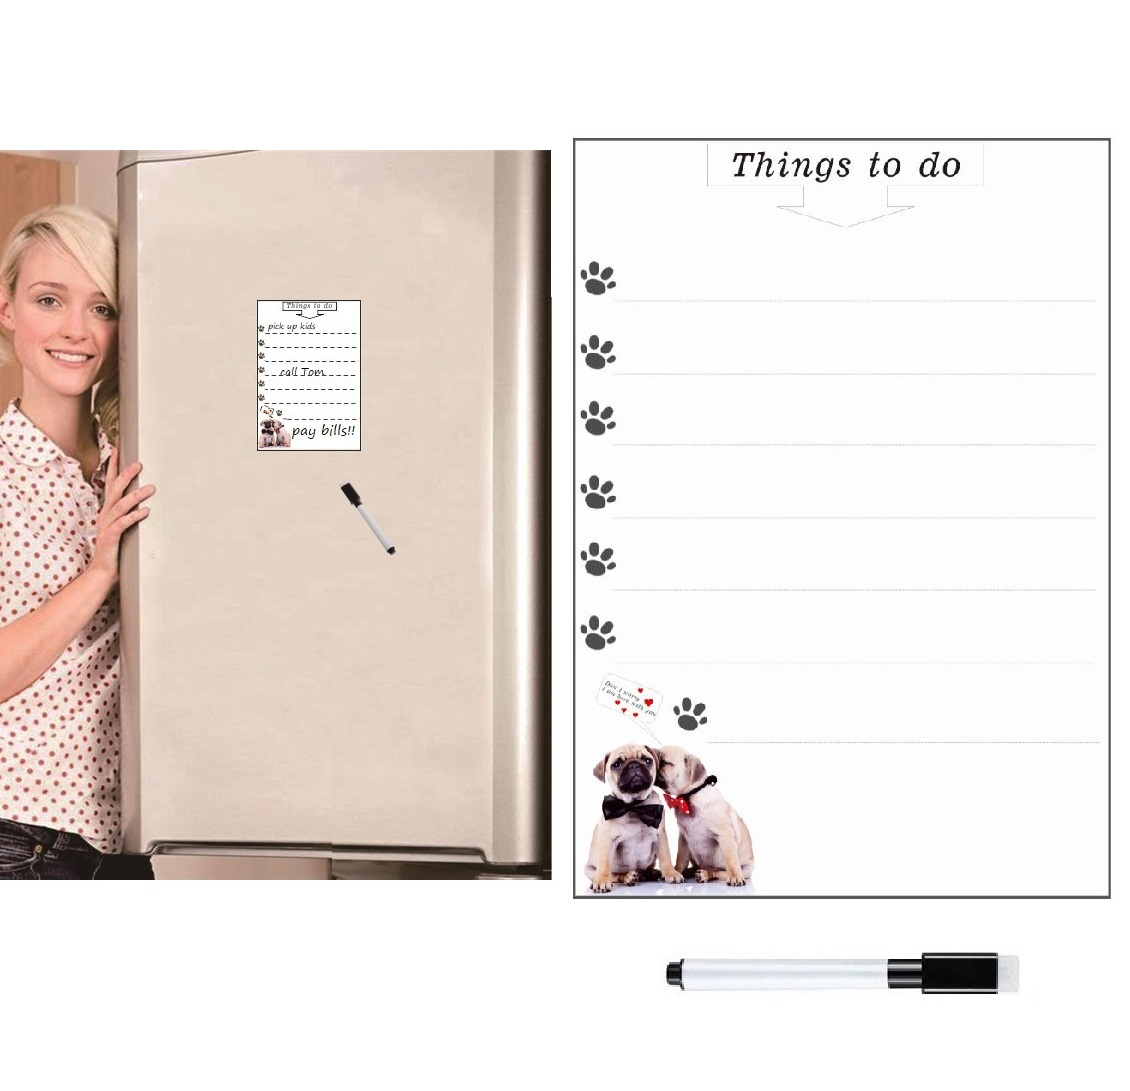 Erasable Magnetic Whiteboard White Board For Fridge Magnet Sticker Weekly Planner To Do List Cute Dog Message Board Marker Pen